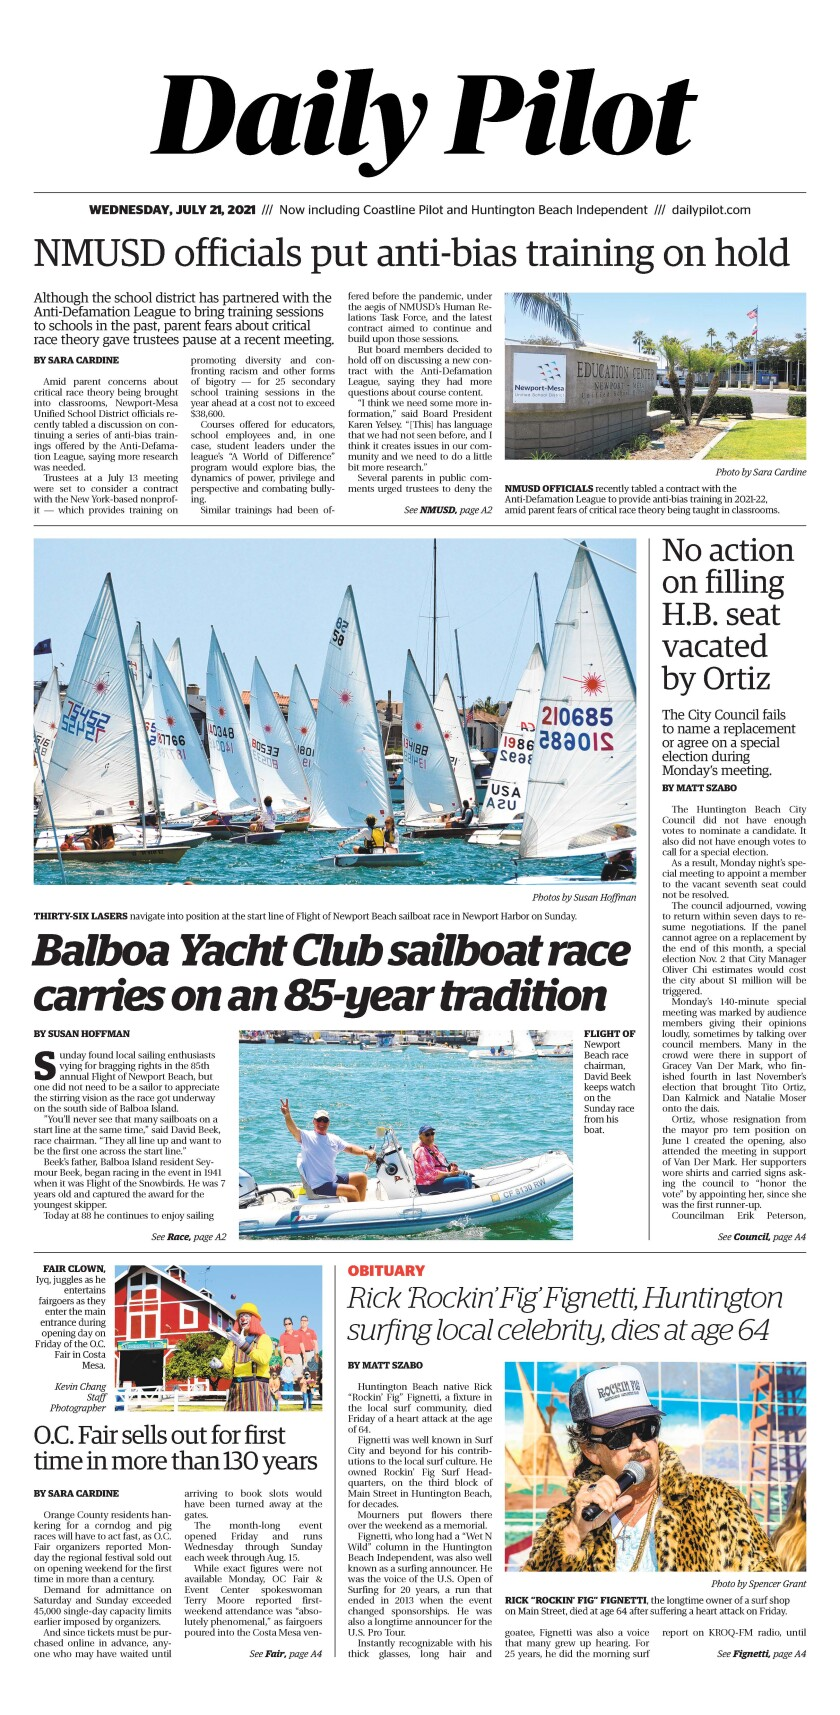 Front page of Daily Pilot e-newspaper for Wednesday, July 21, 2021.